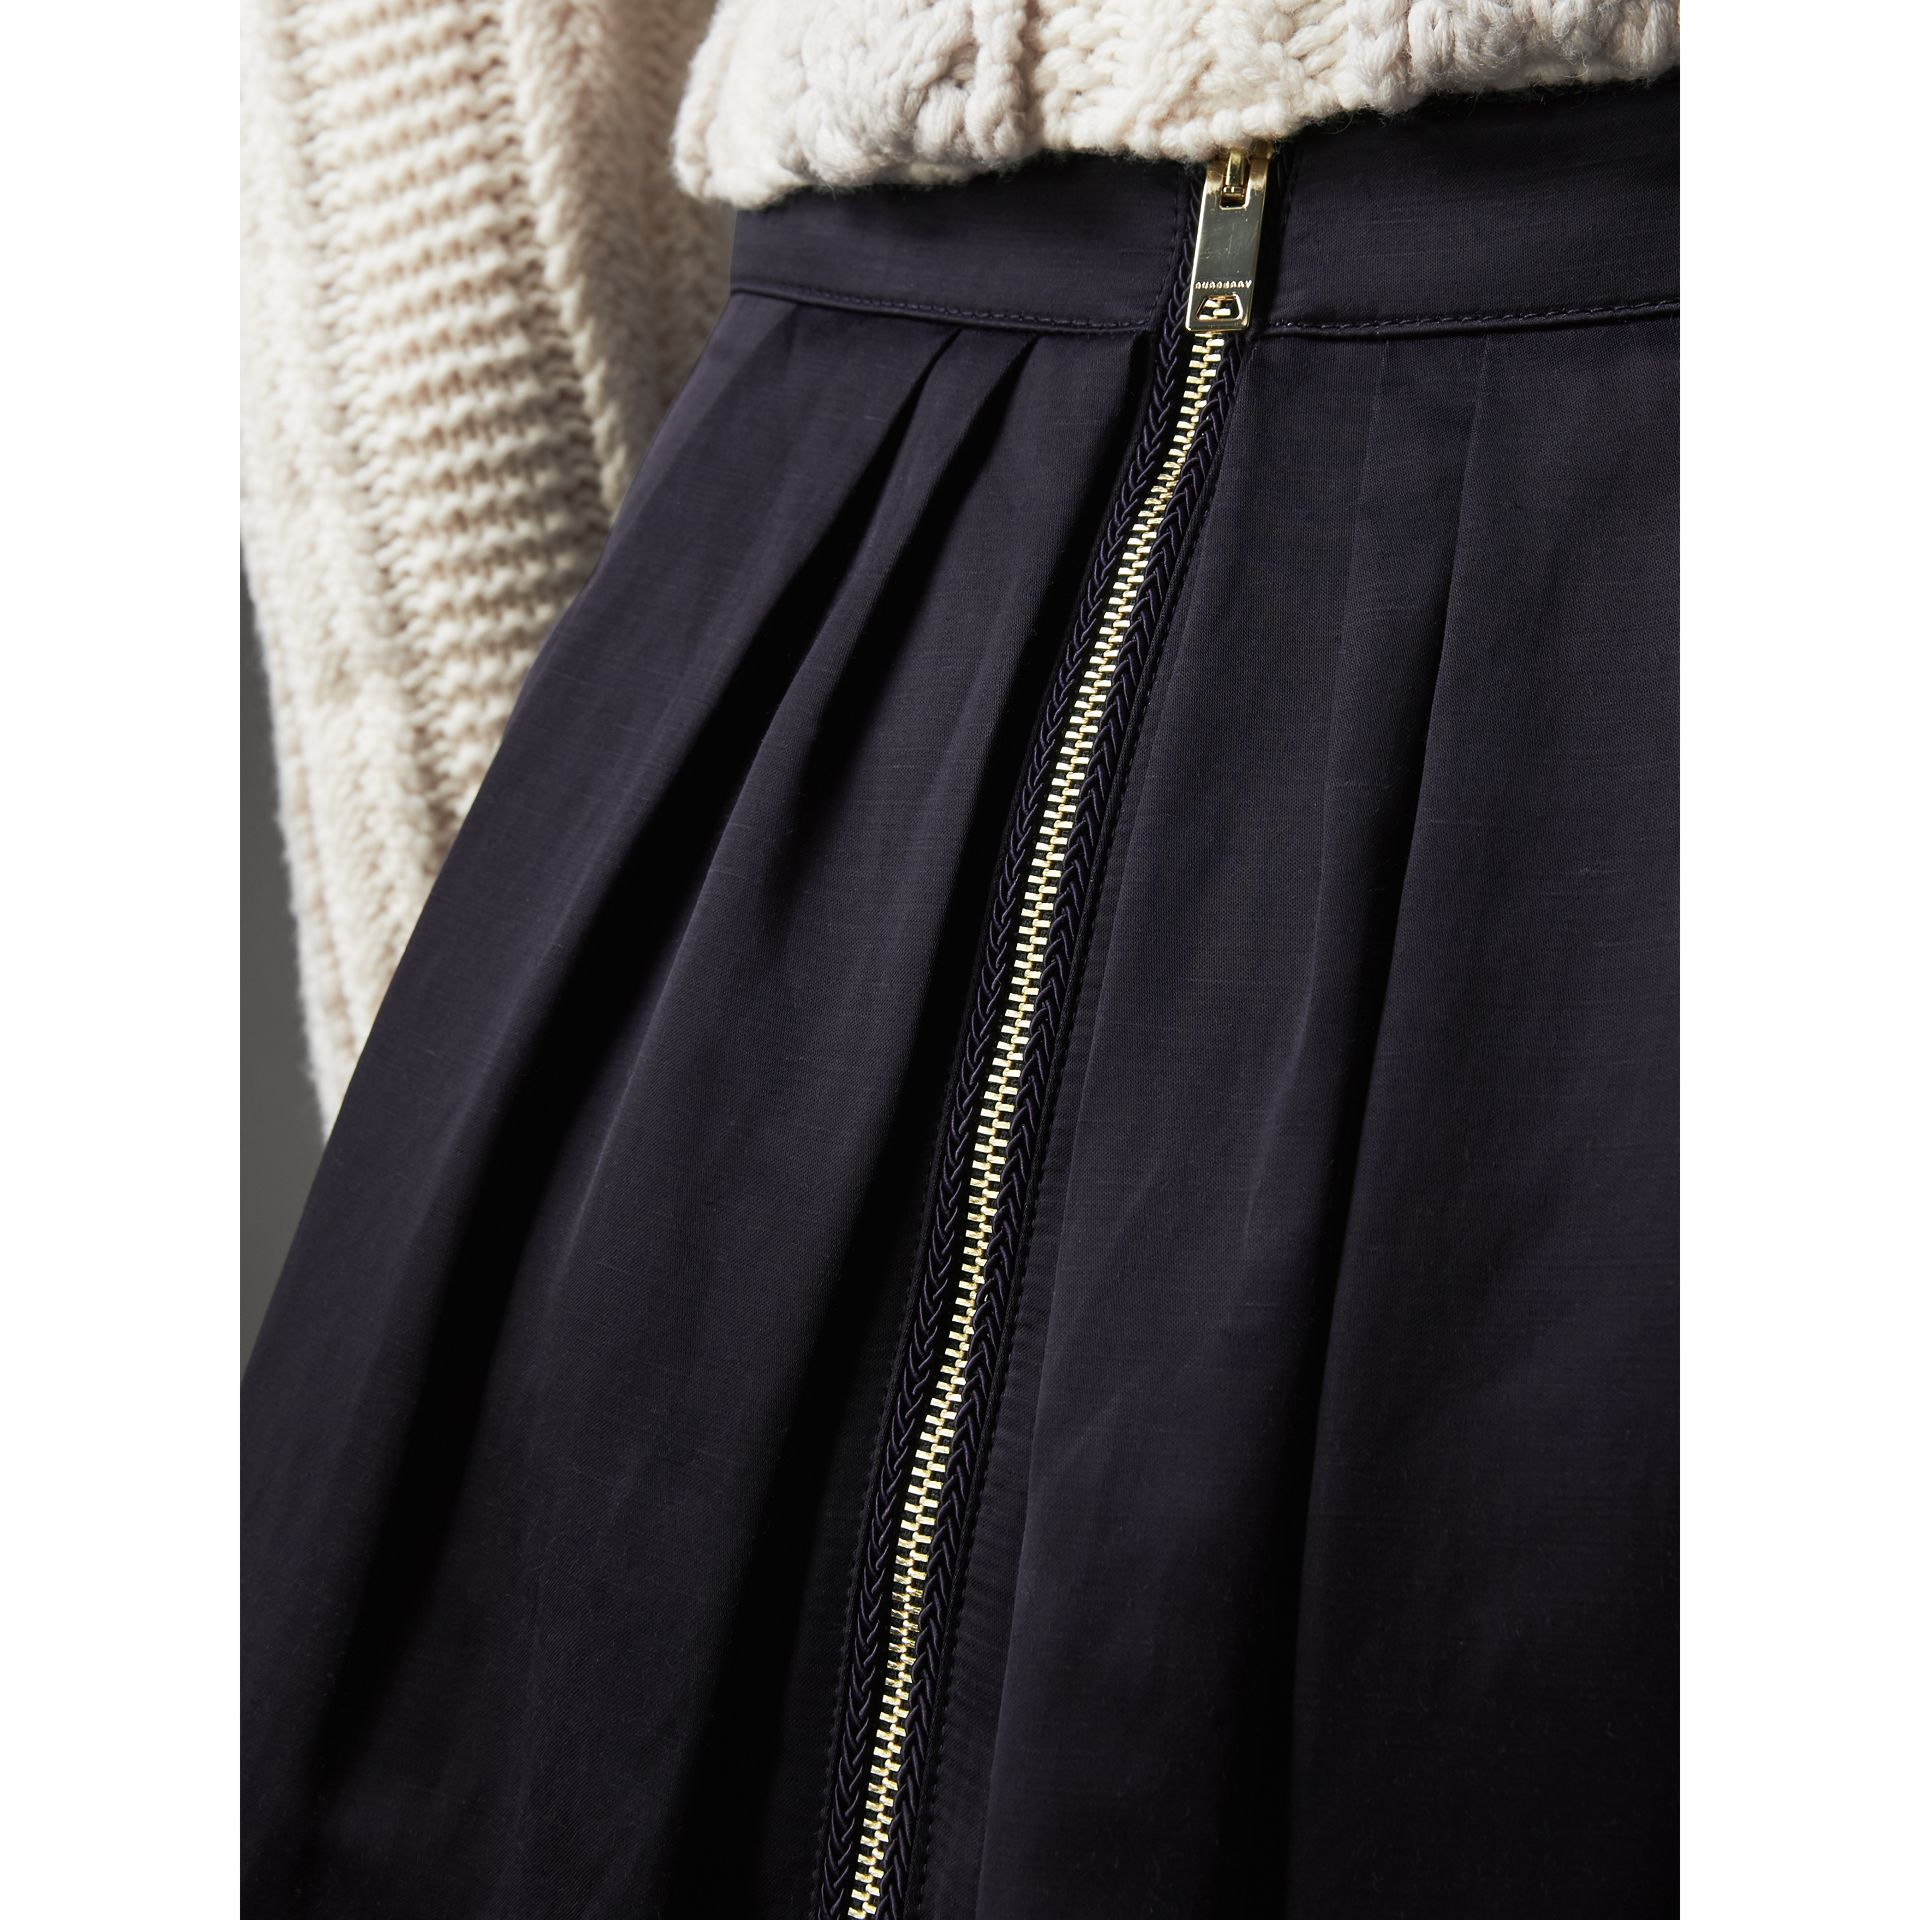 Pleated Linen Cotton Blend Skirt in Navy - Women | Burberry United Kingdom - gallery image 2